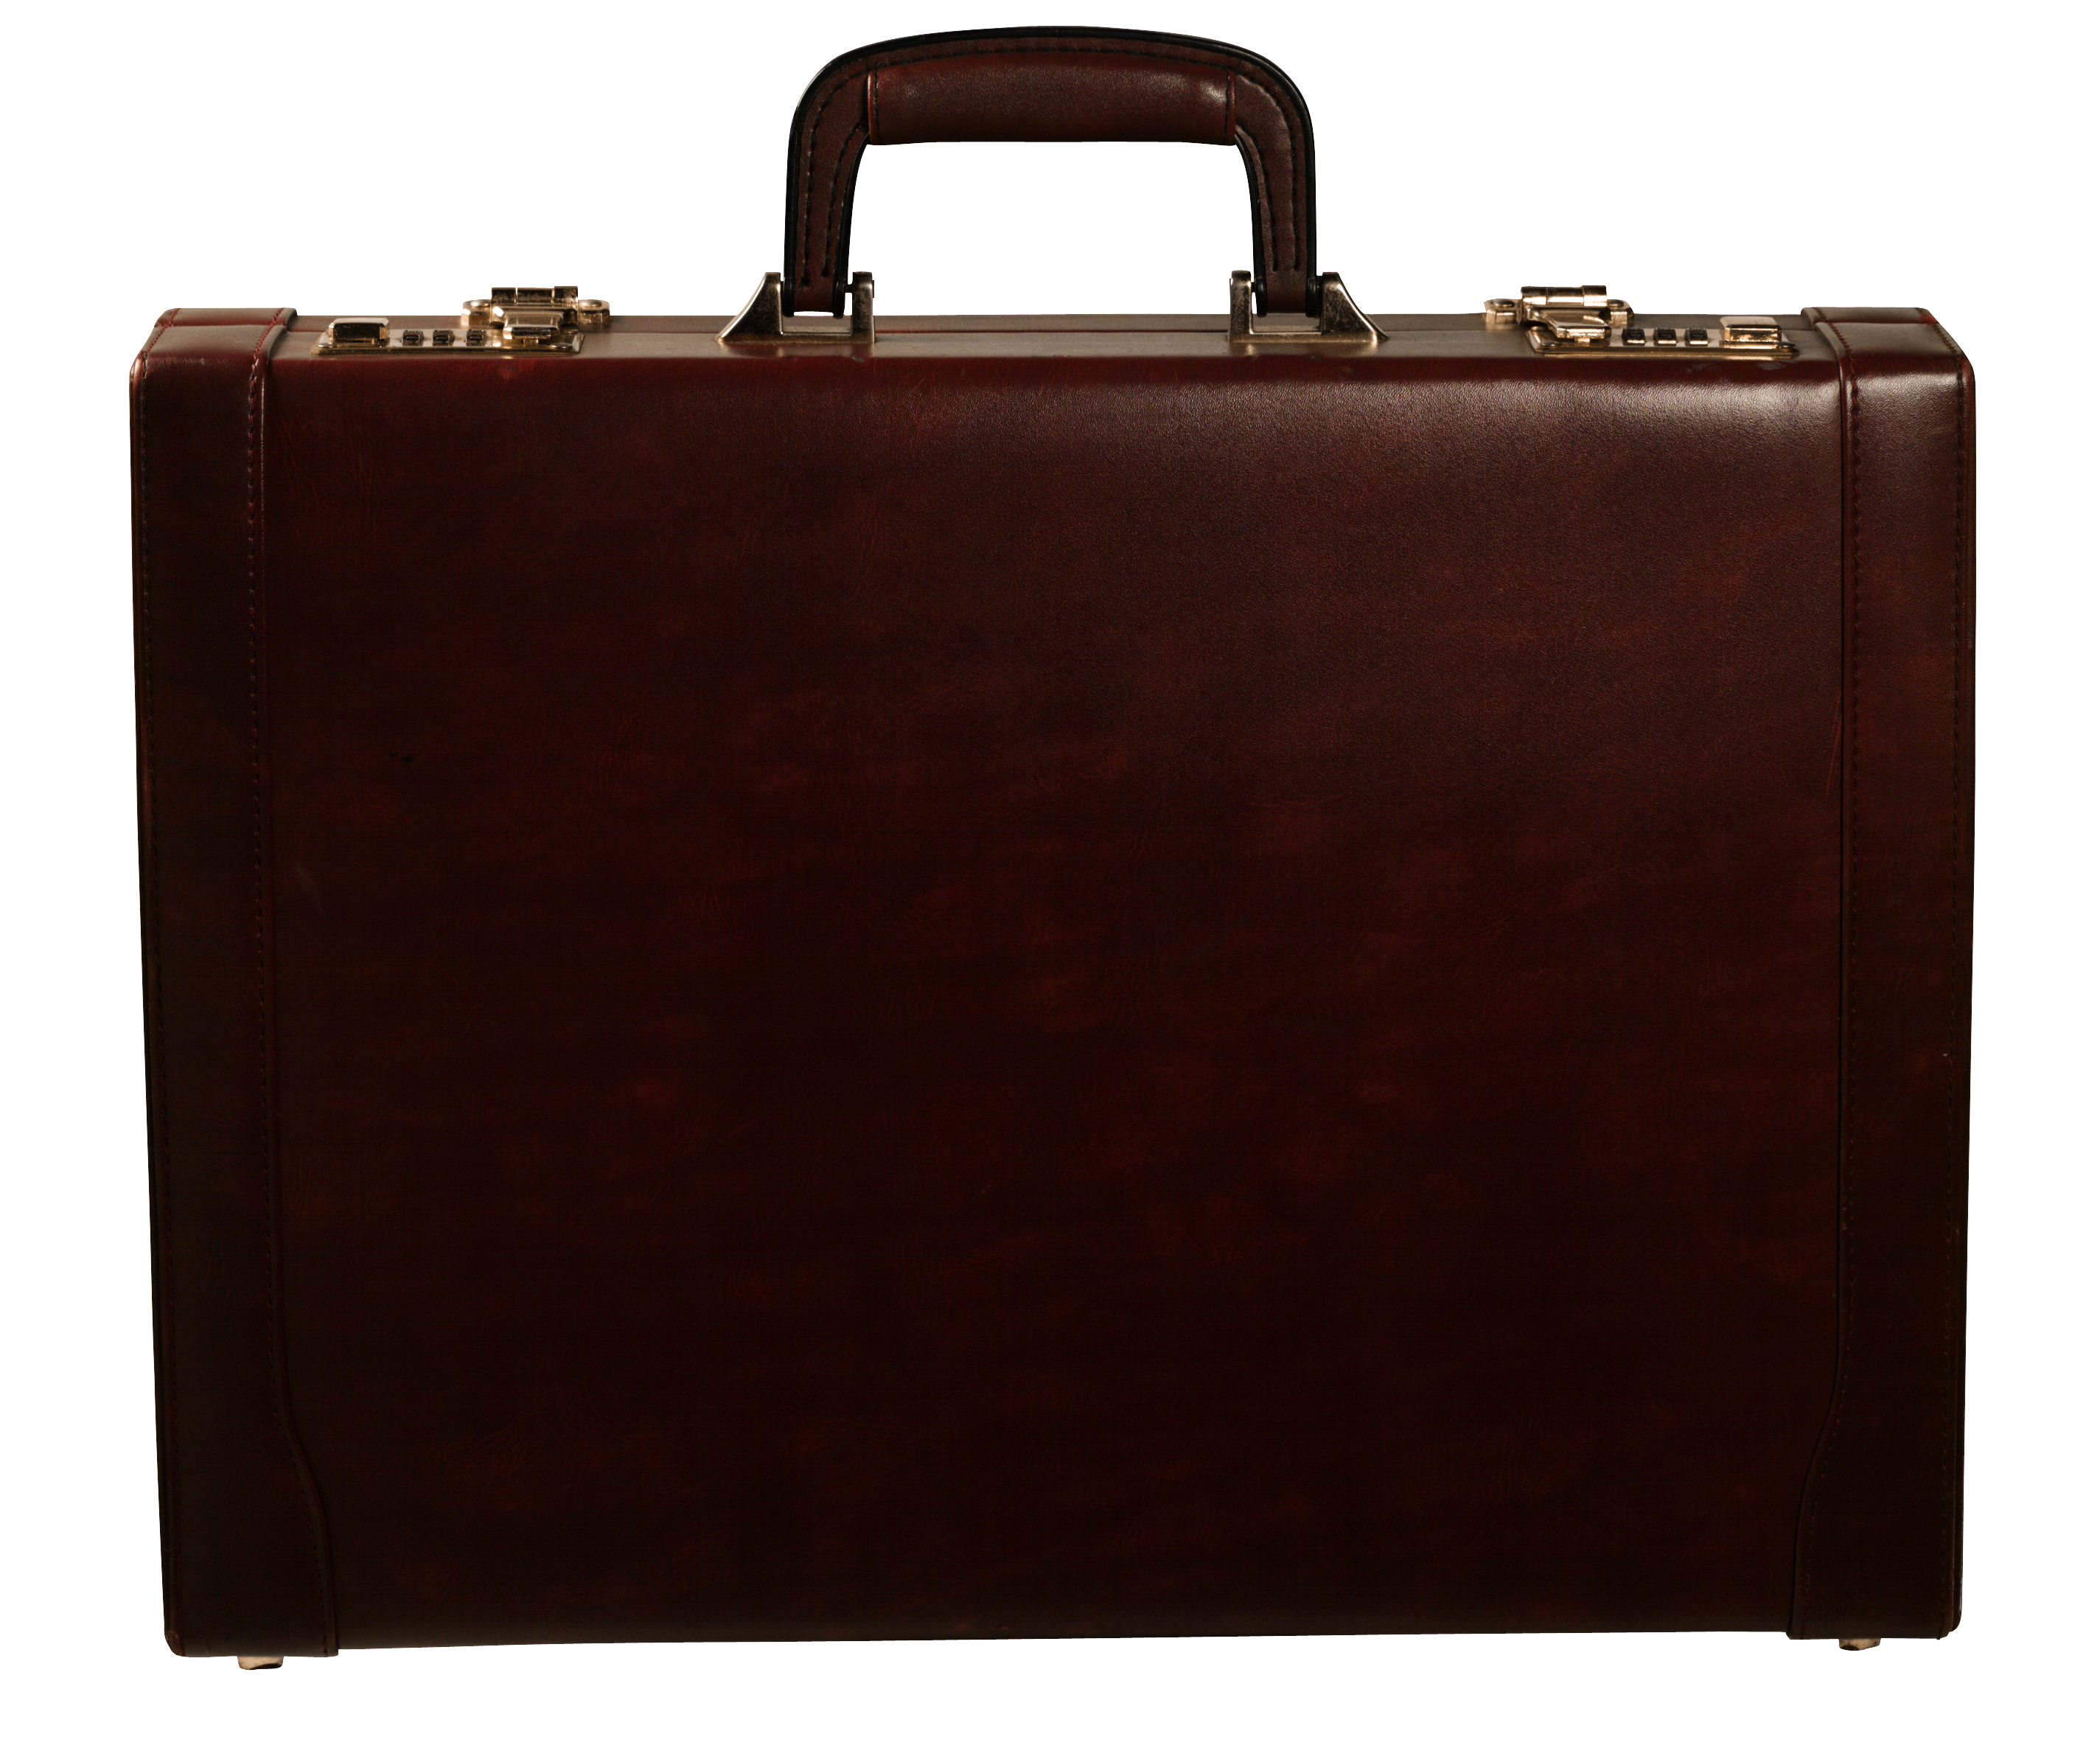 jpg library download Suitcase PNG image